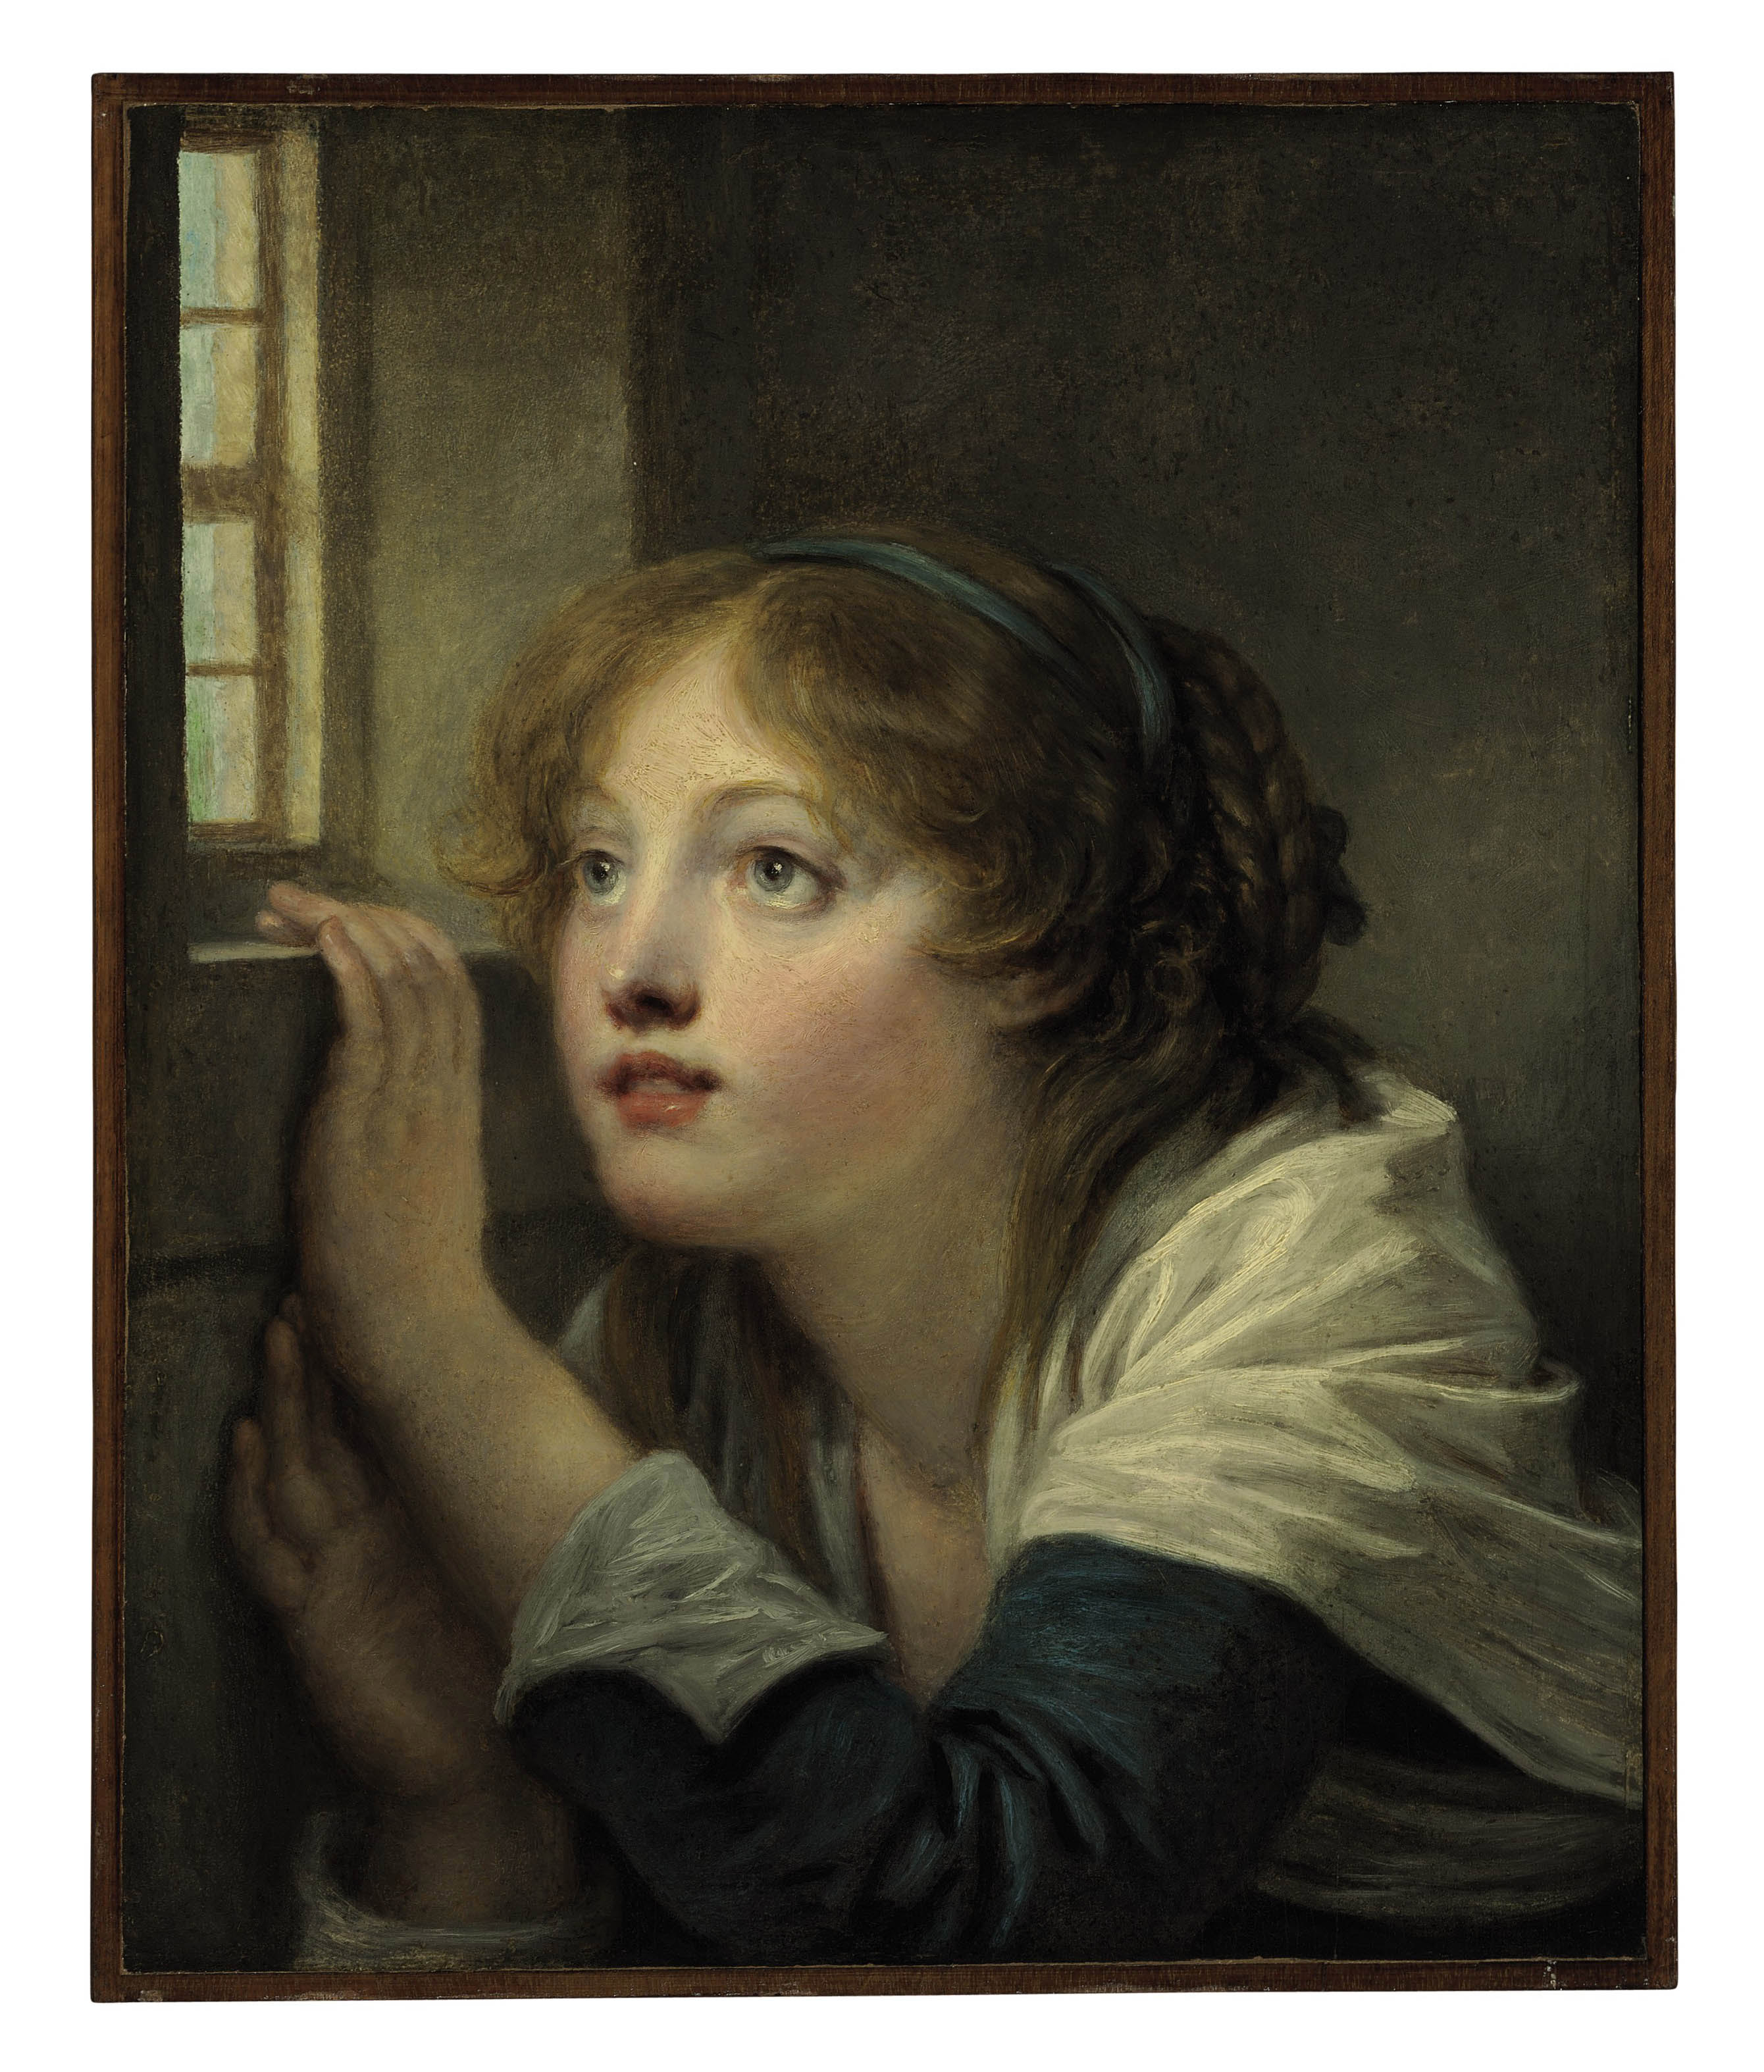 A young girl at a window